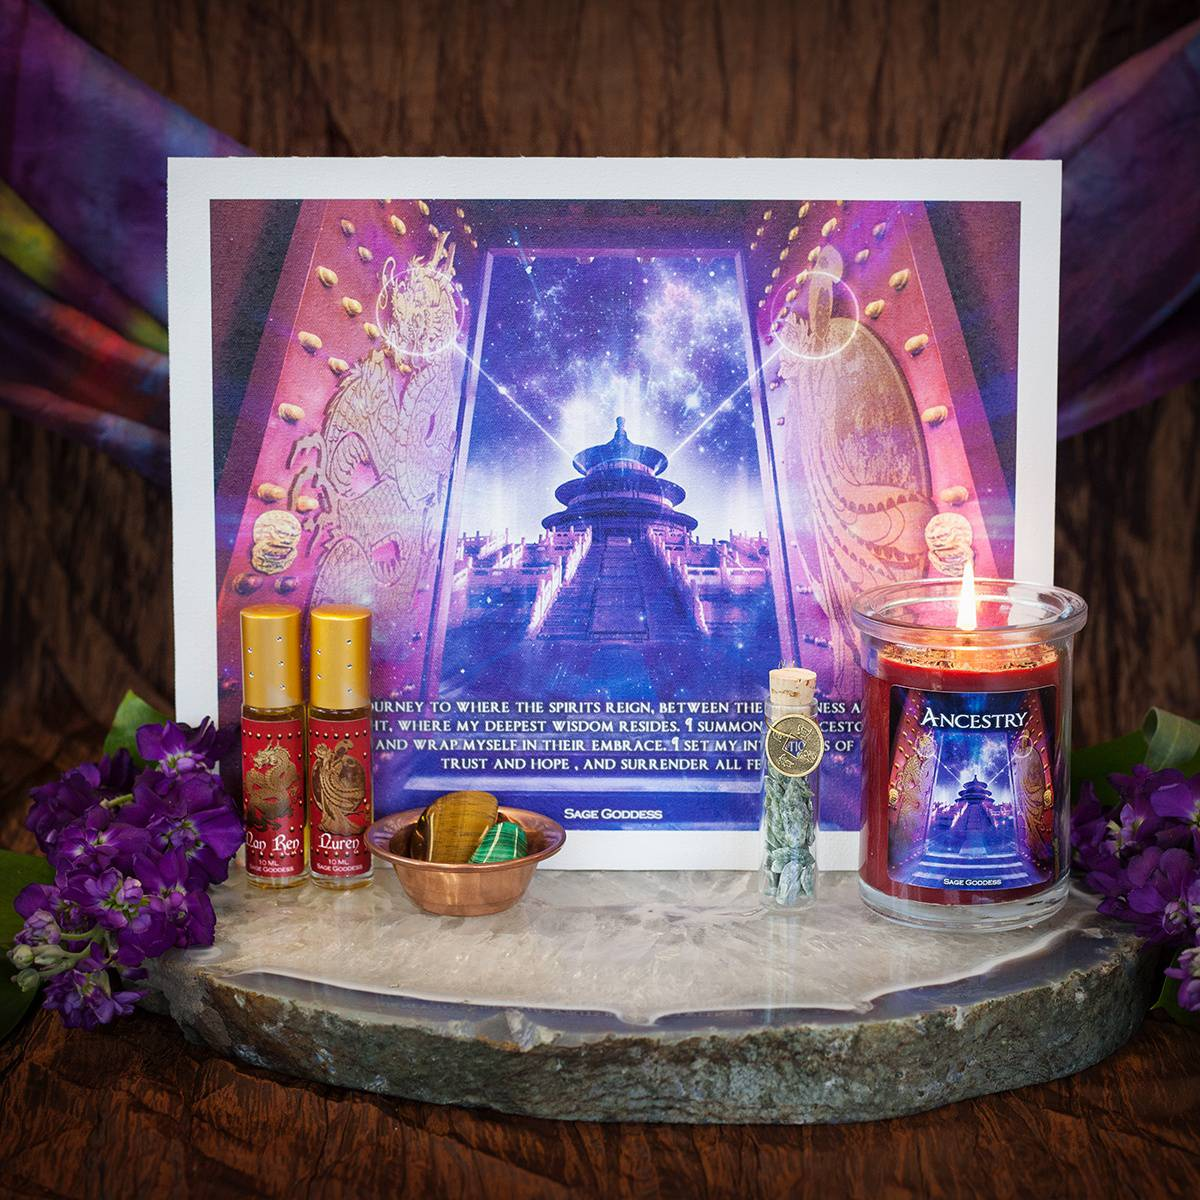 Chinese Full Moon- Ancestral Healing 4_30 Featured